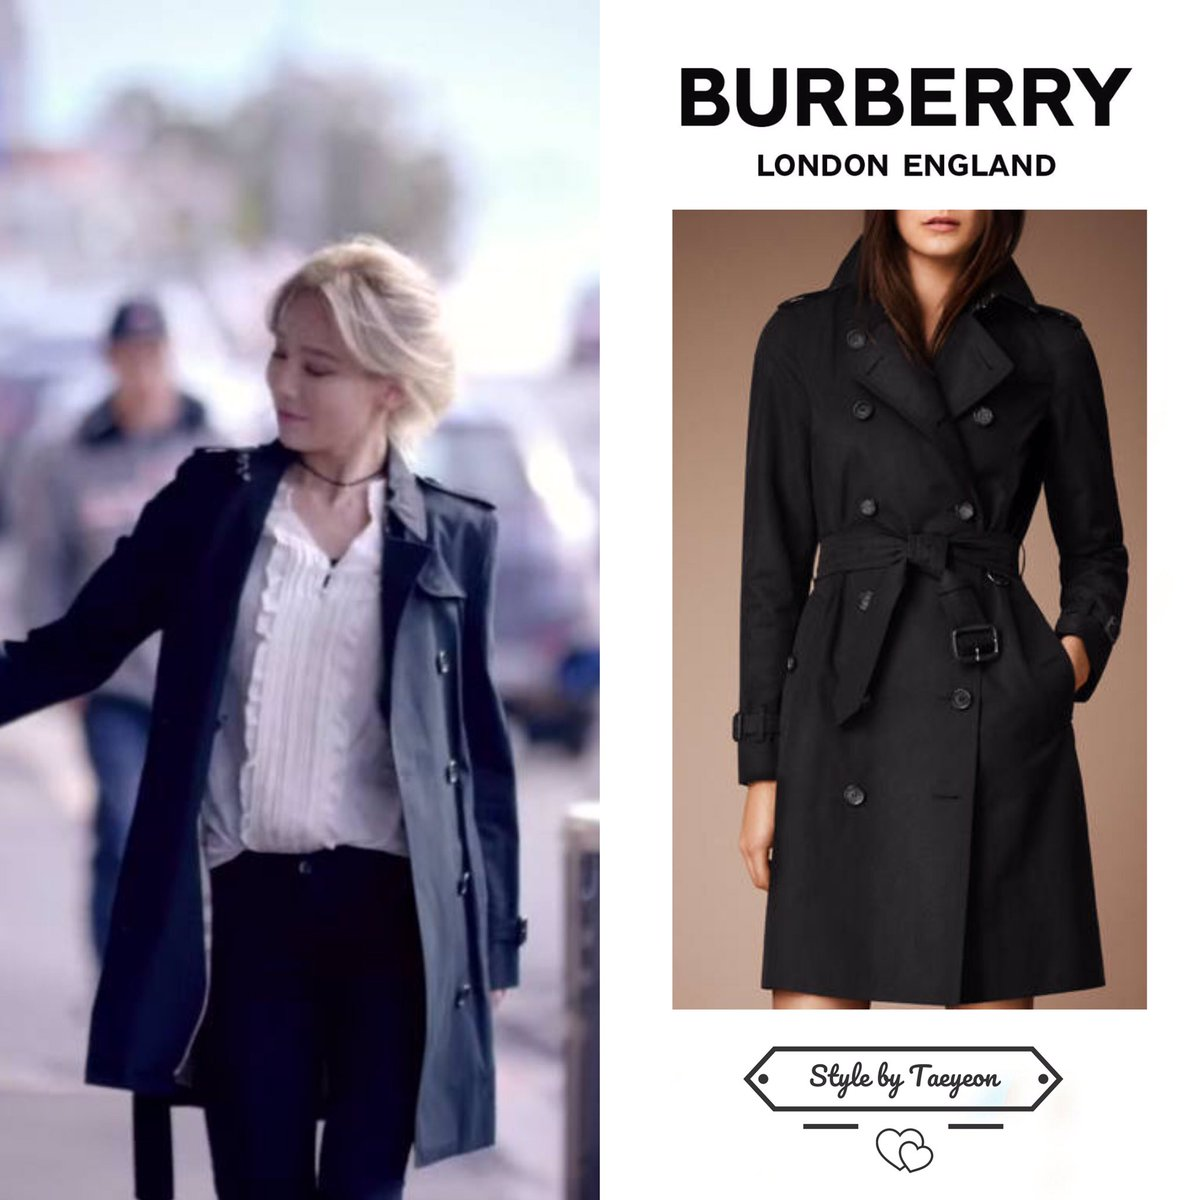 20151005 - 'I (feat. Verbal Jint) MV⁣⁣⁣⁣⁣⁣⁣⁣⁣⁣🏷 BURBERRY ⁣The Westminster Heritage Trench⁣$1,896⁣⁣⁣⁣⁣⁣⁣⁣⁣⁣#TAEYEON #KIMTAEYEON #김태연 #태연 #GIRLSGENERATION #SNSD #소녀시대 #テヨン #少女時代